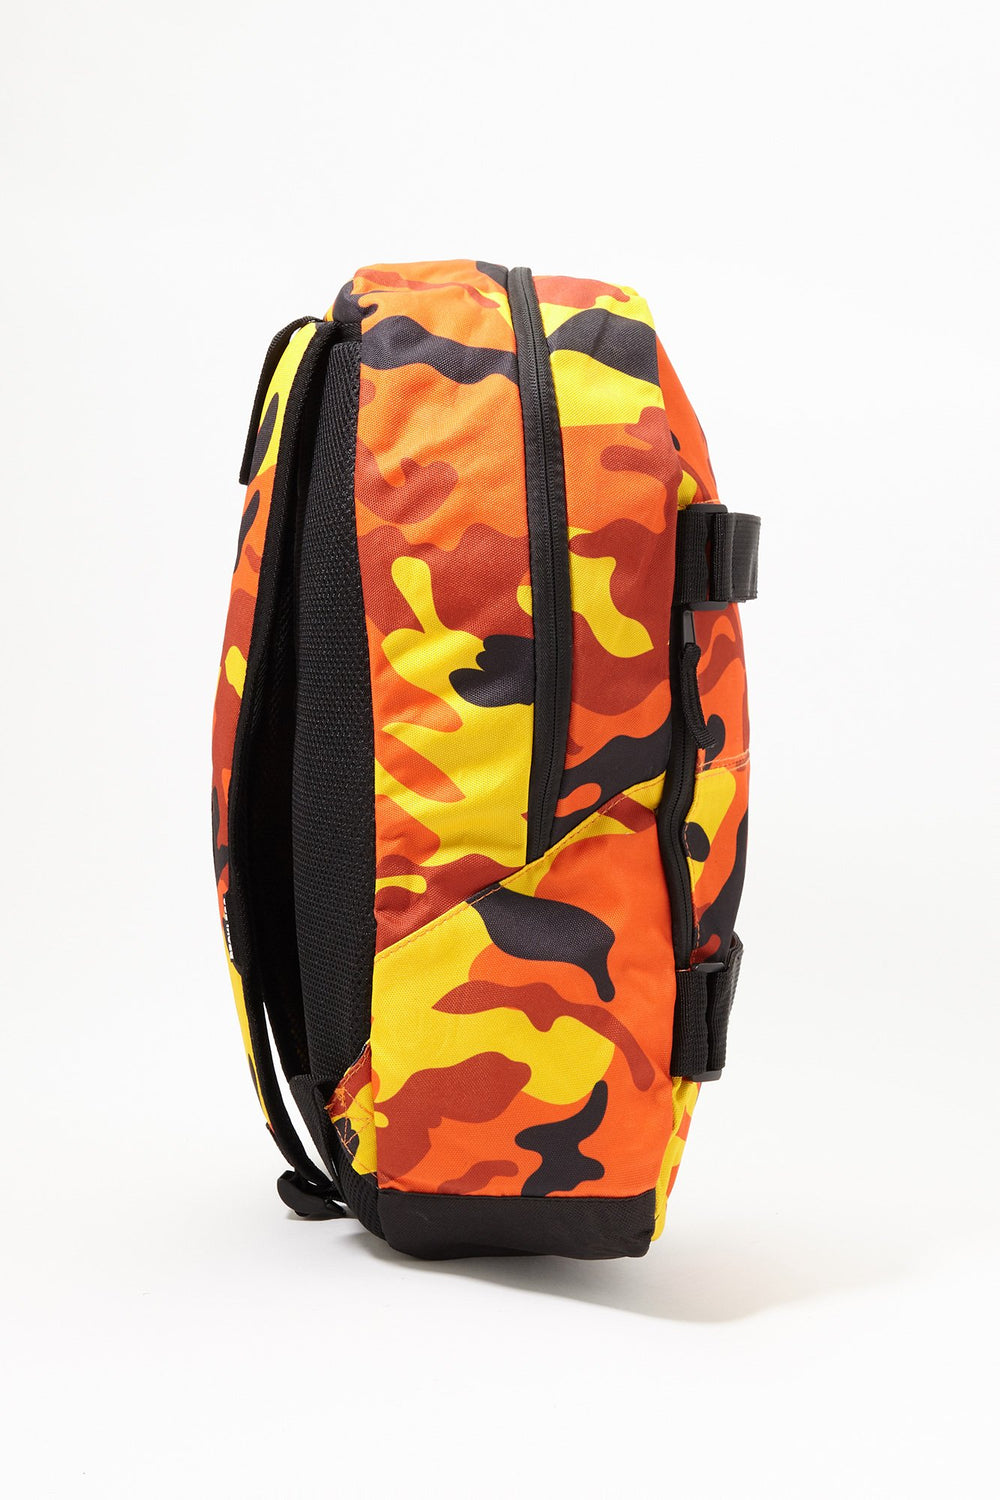 Sac À Dos Imprimé Camouflage Young & Reckless Orange